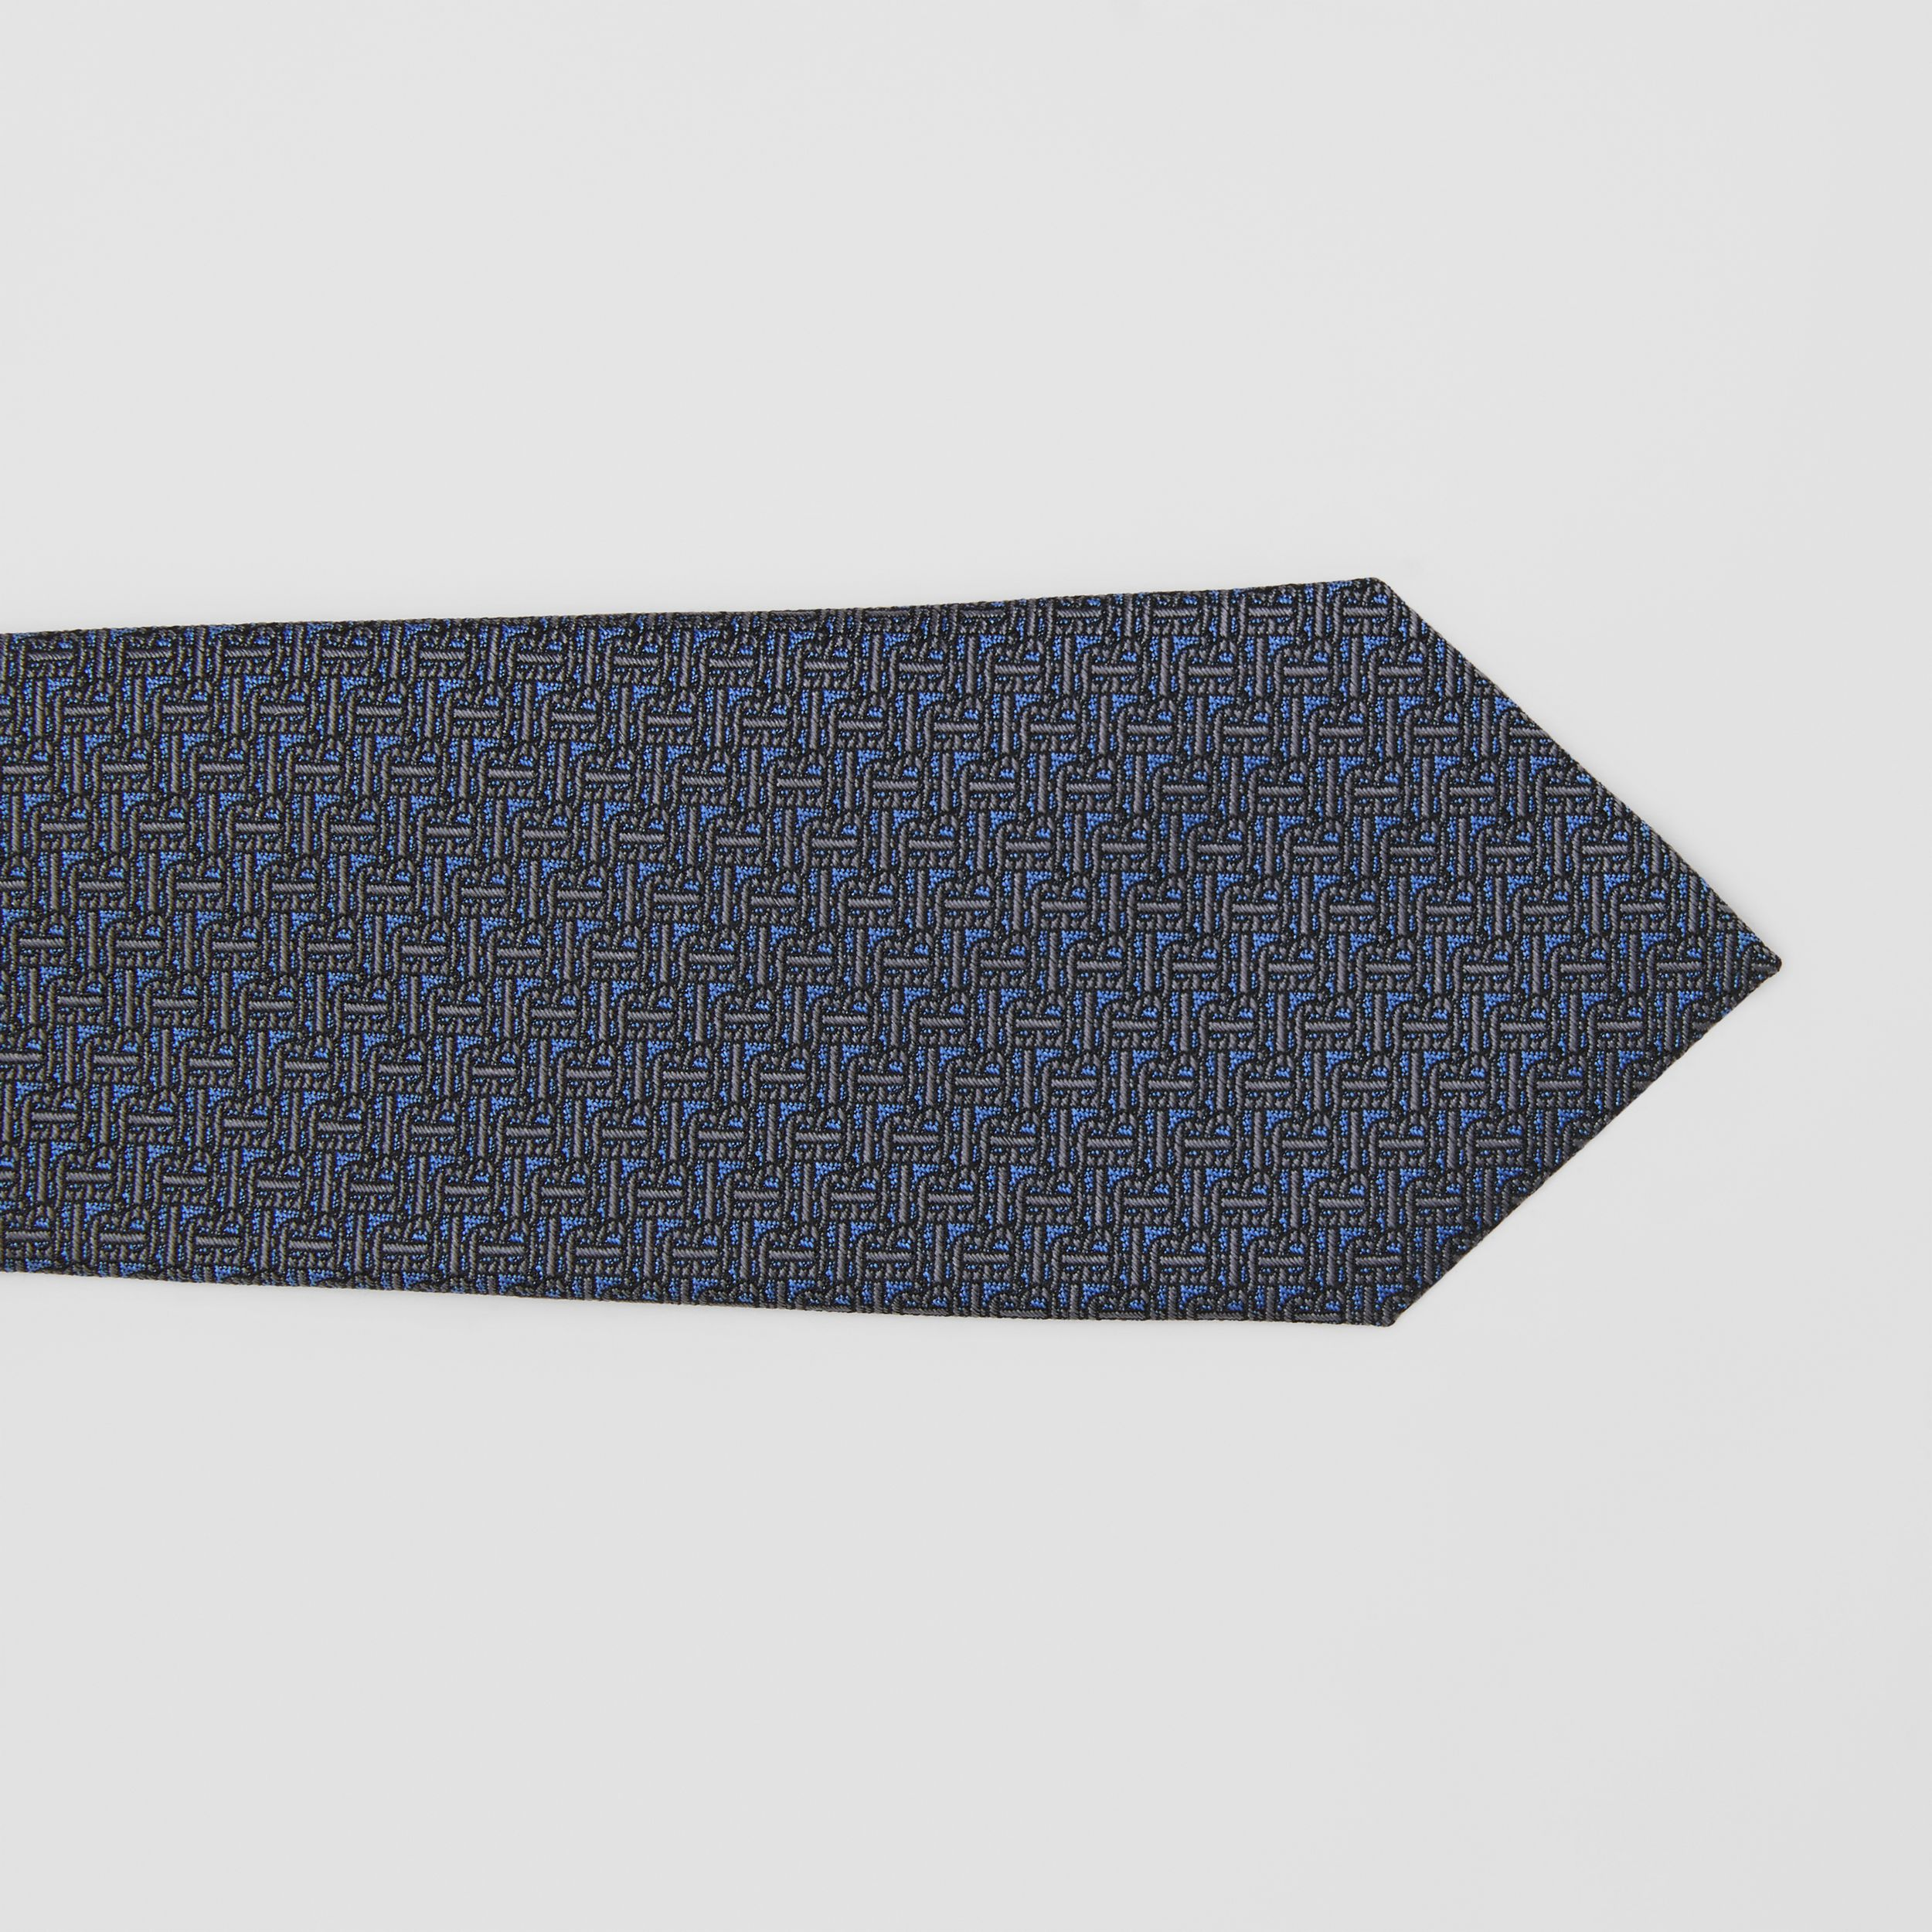 Classic Cut Monogram Silk Jacquard Tie in Canvas Blue - Men | Burberry - 2